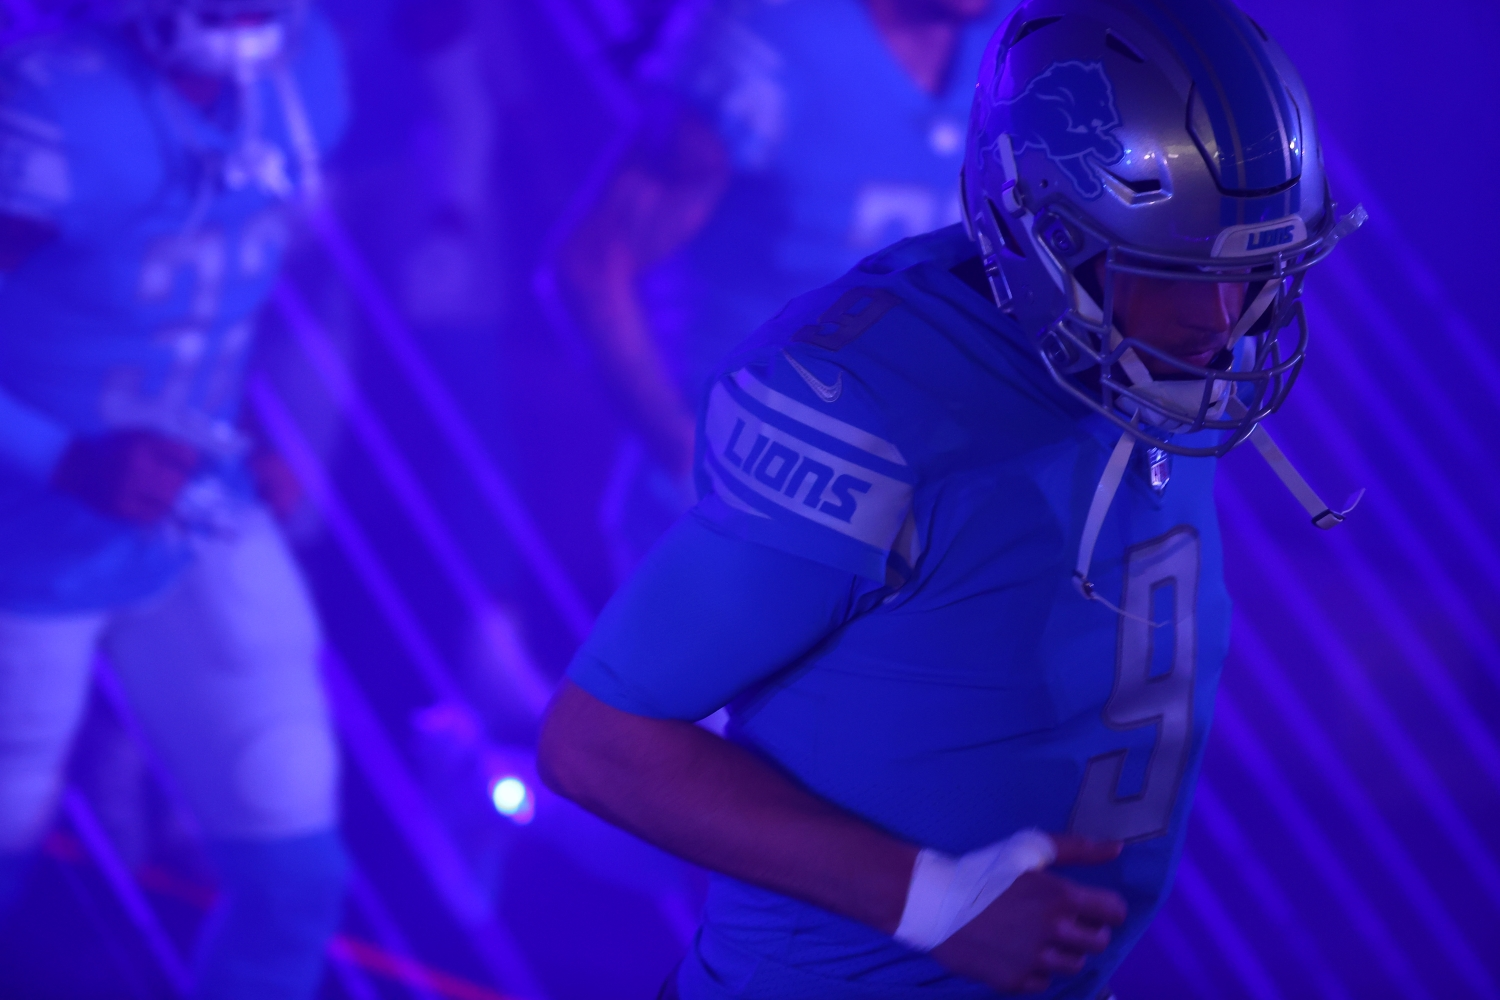 Matthew Stafford of the Detroit Lions takes the field before a game against the Minnesota Vikings.